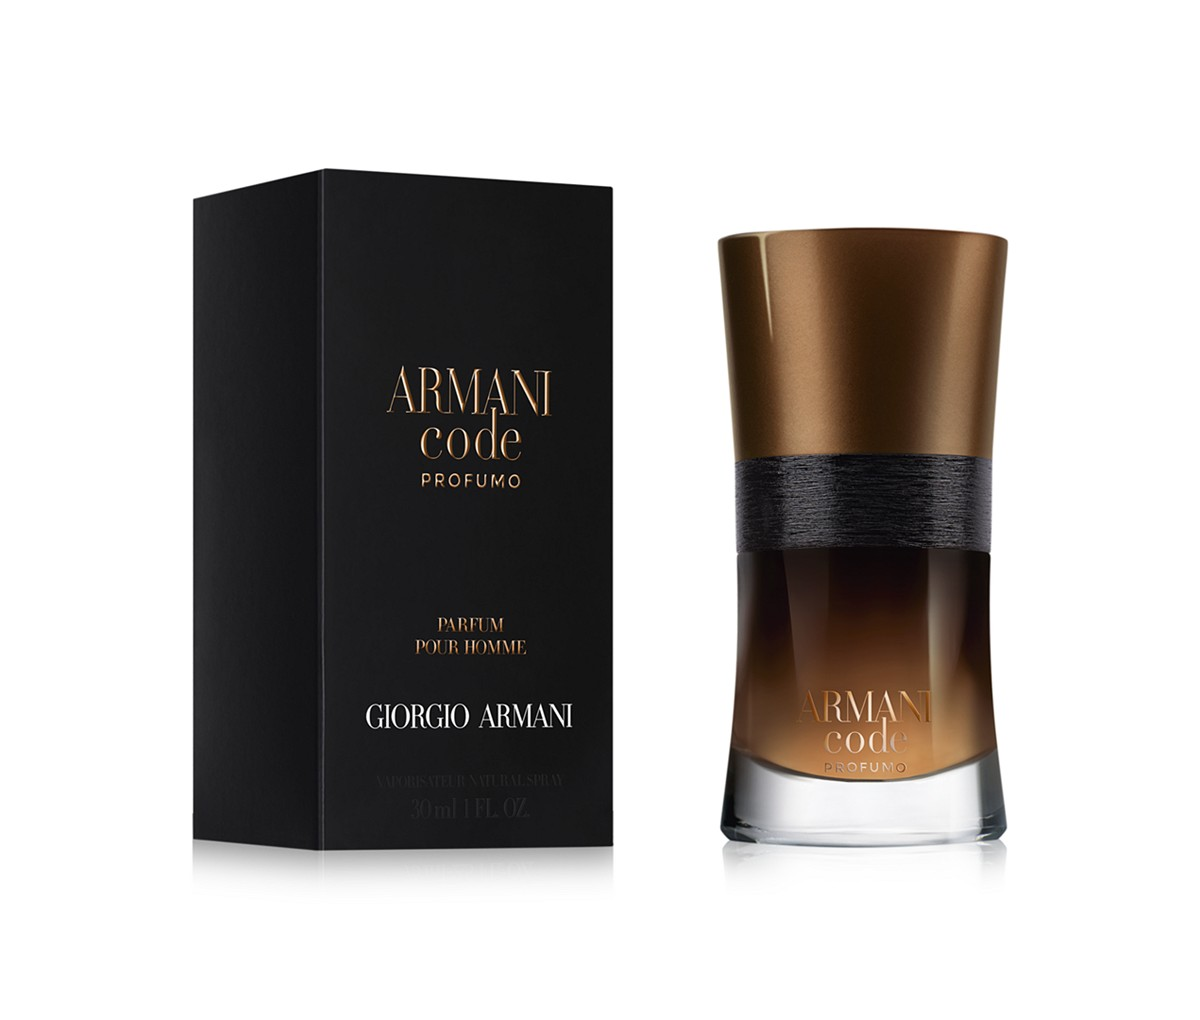 armani code profumo giorgio armani cologne a new. Black Bedroom Furniture Sets. Home Design Ideas